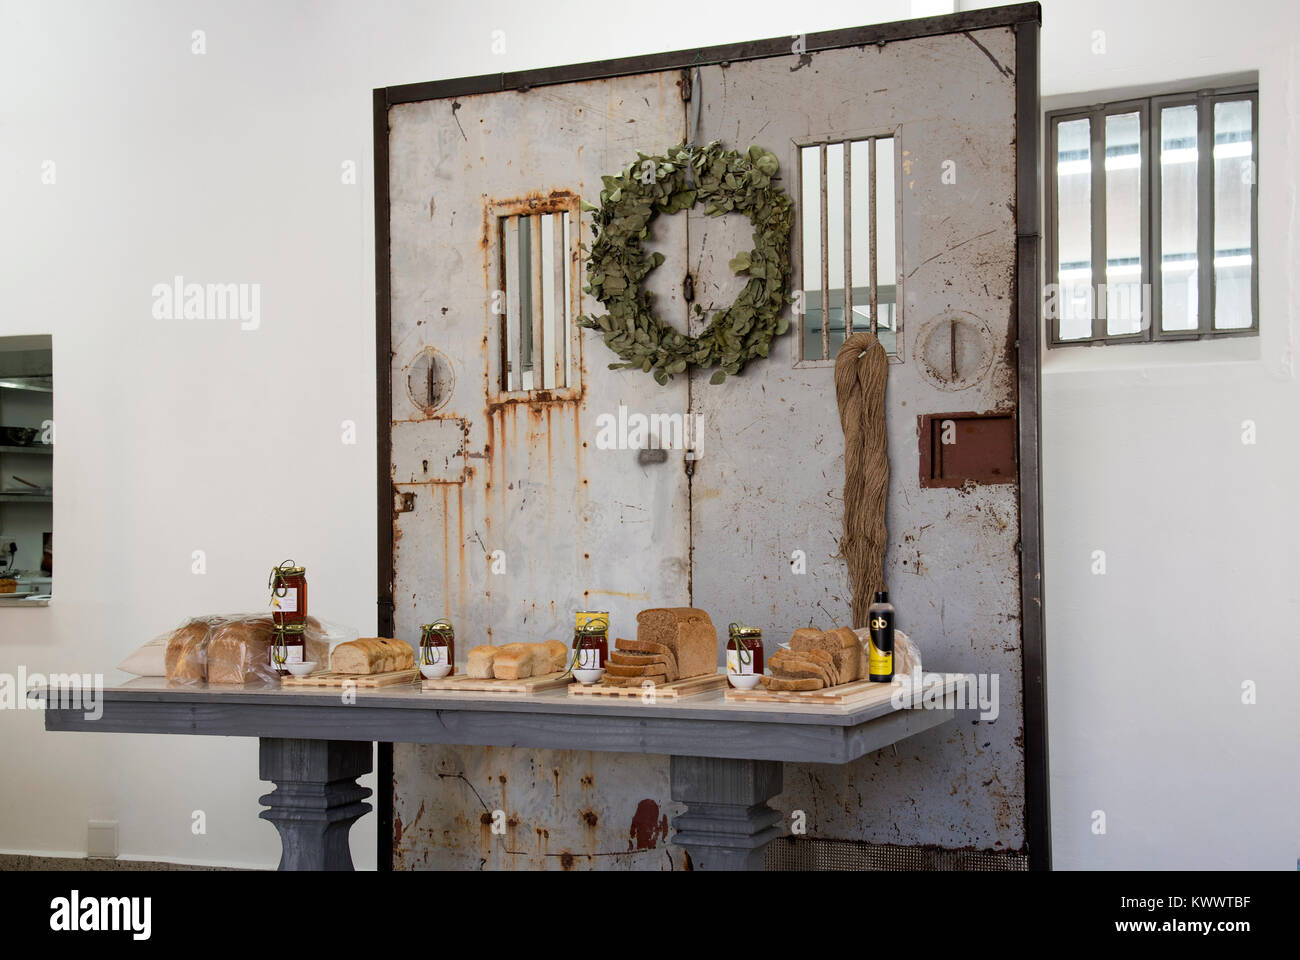 Restaurant Kitchen Doors Stock Photos & Restaurant Kitchen ...